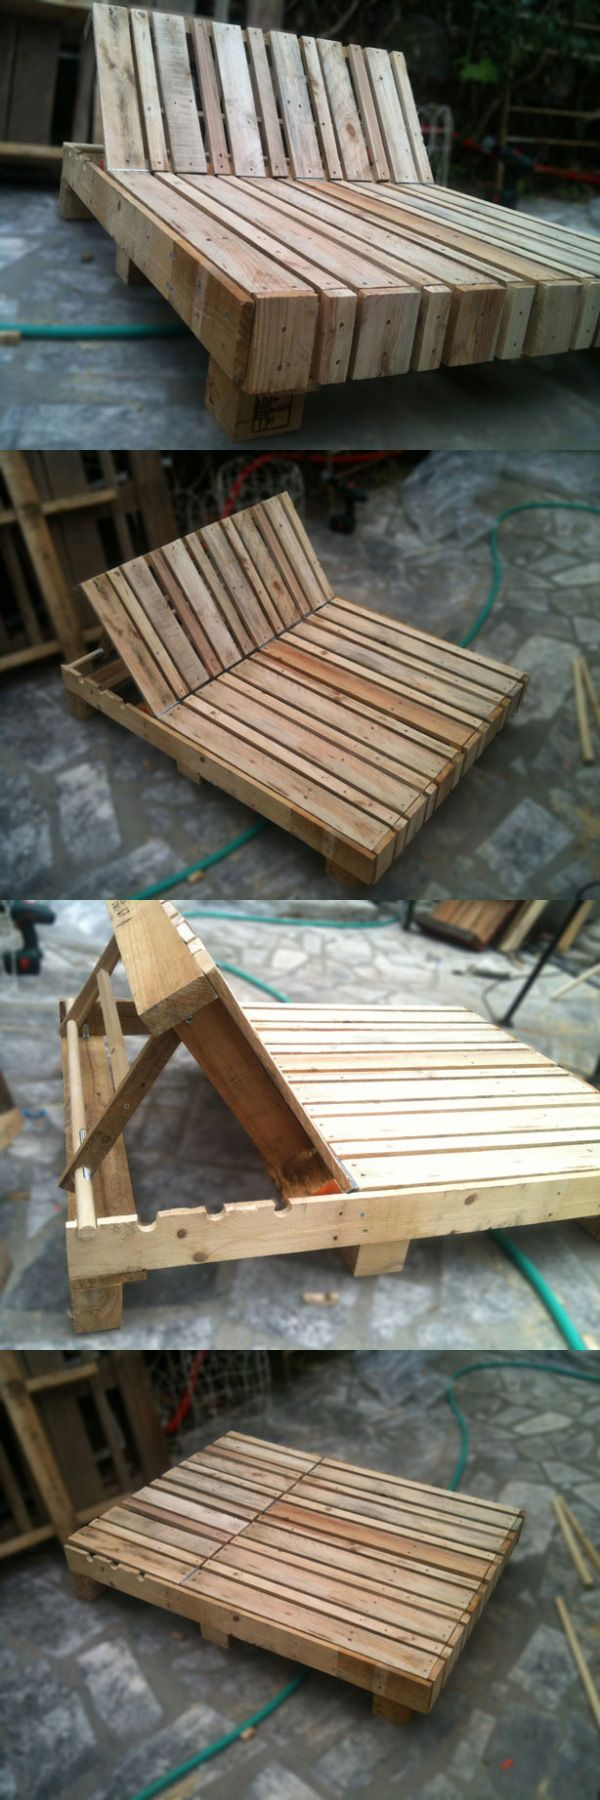 Double Pallet Lounge Chair Diy Pallet Projects Pallet Lounge